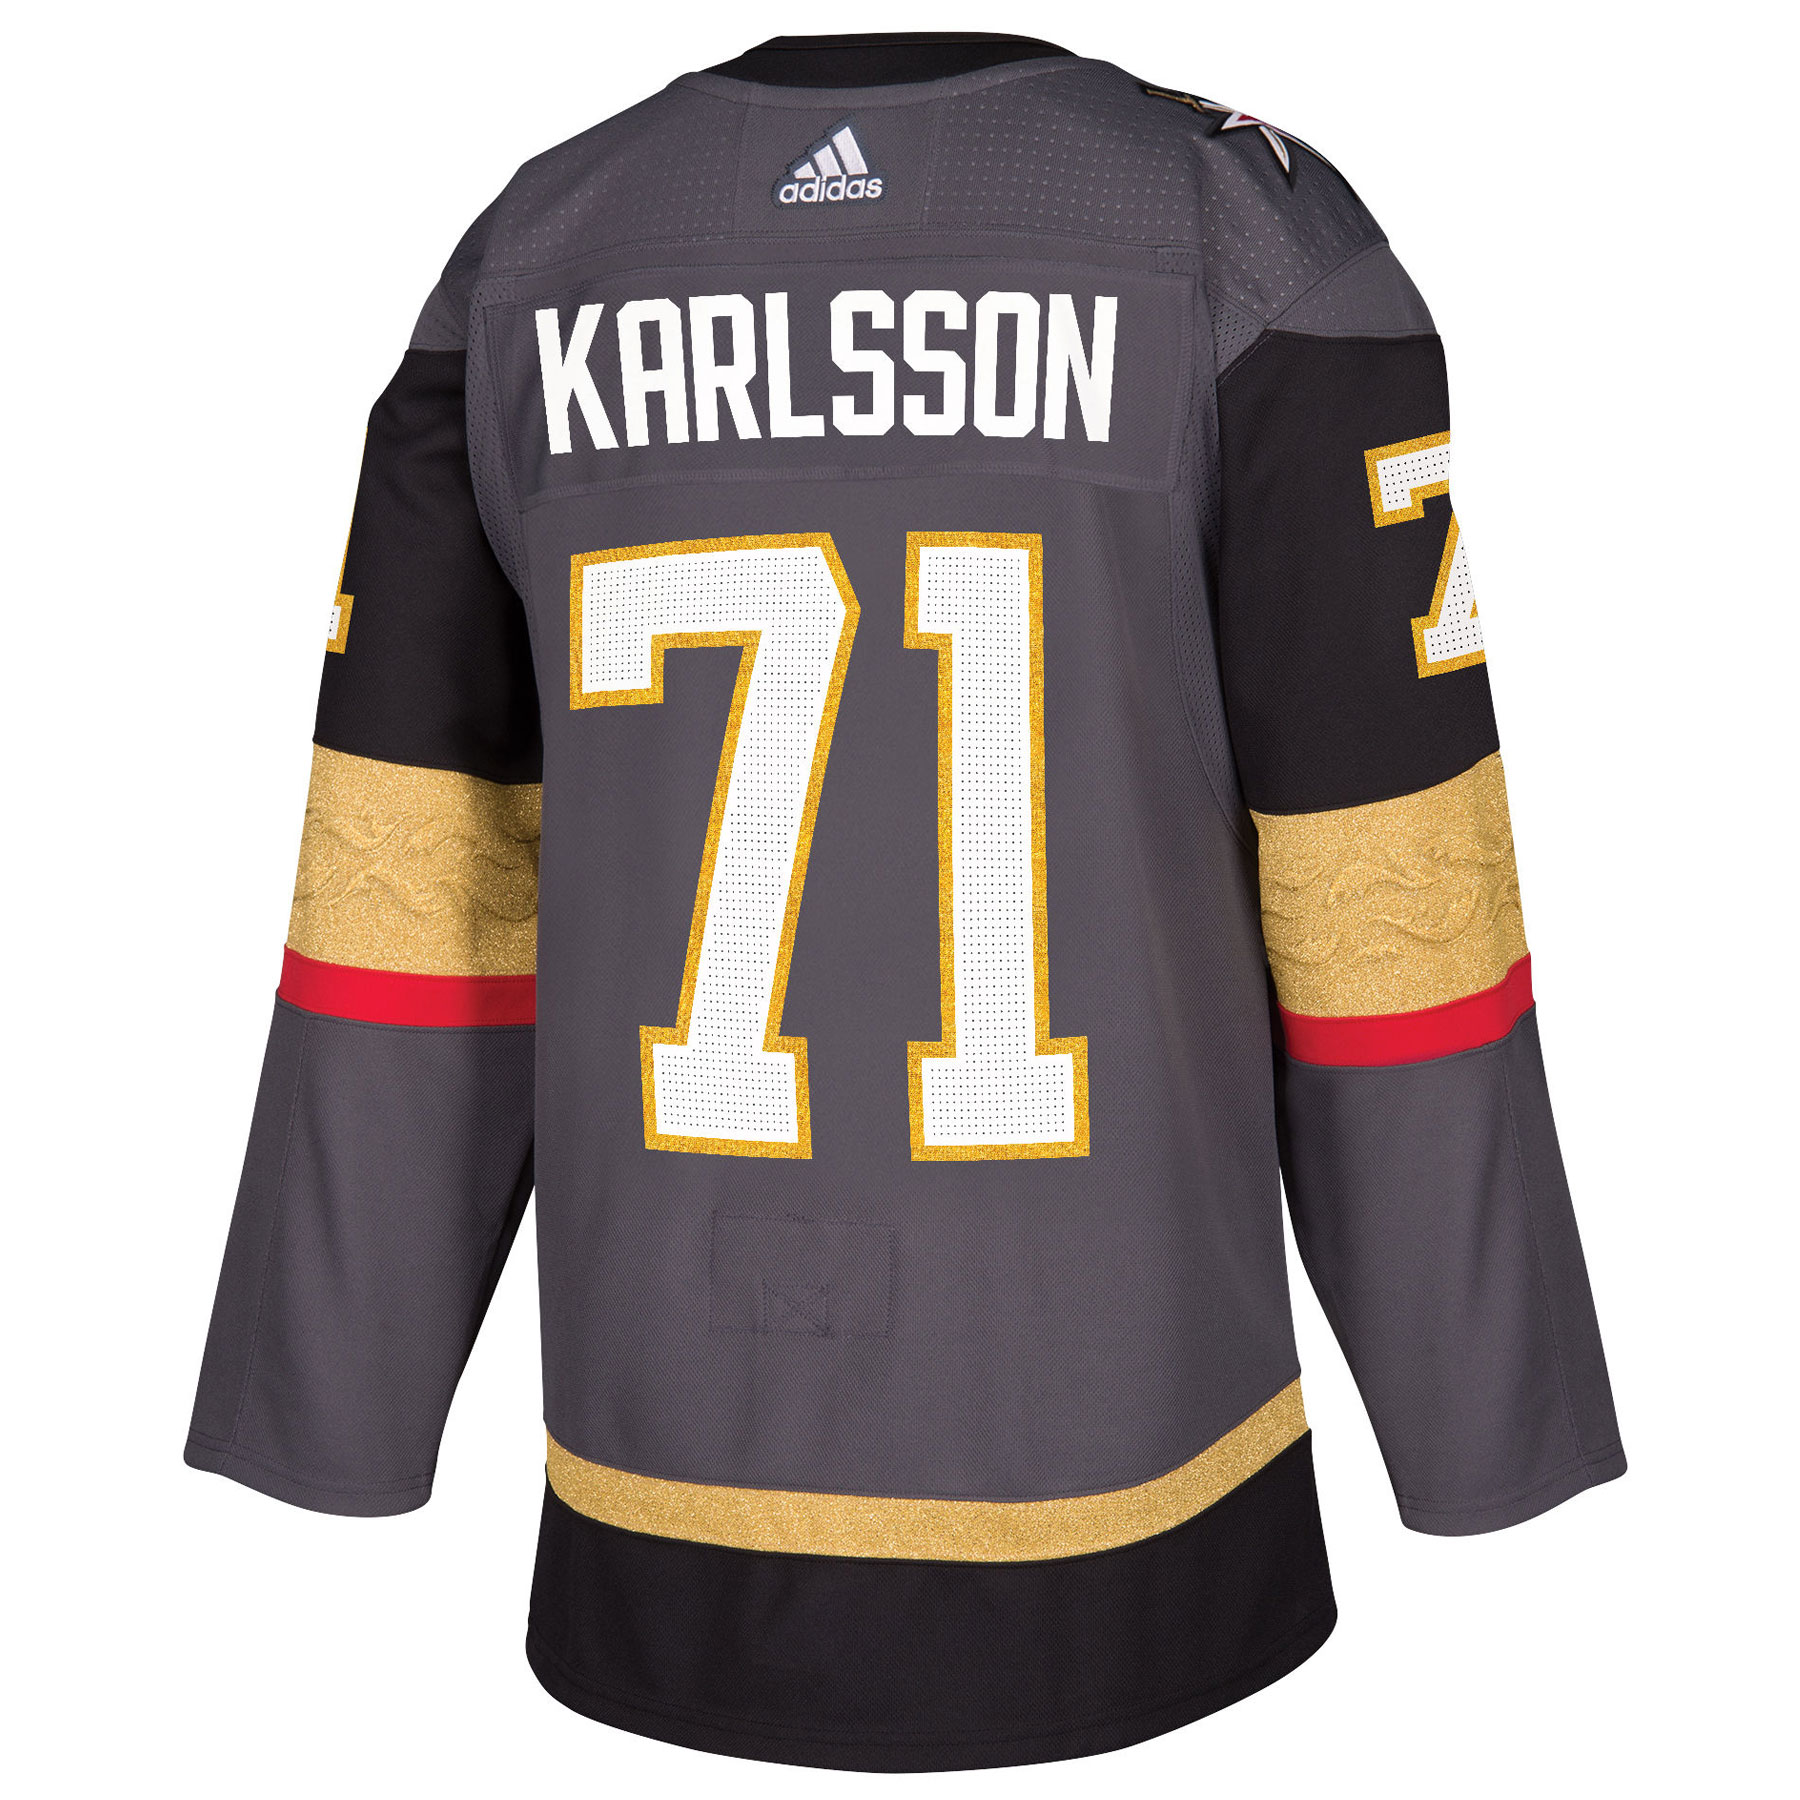 William Karlsson Vegas Golden Knights adidas NHL Authentic Pro Home Jersey  - Pro Stitched 8730f61b4